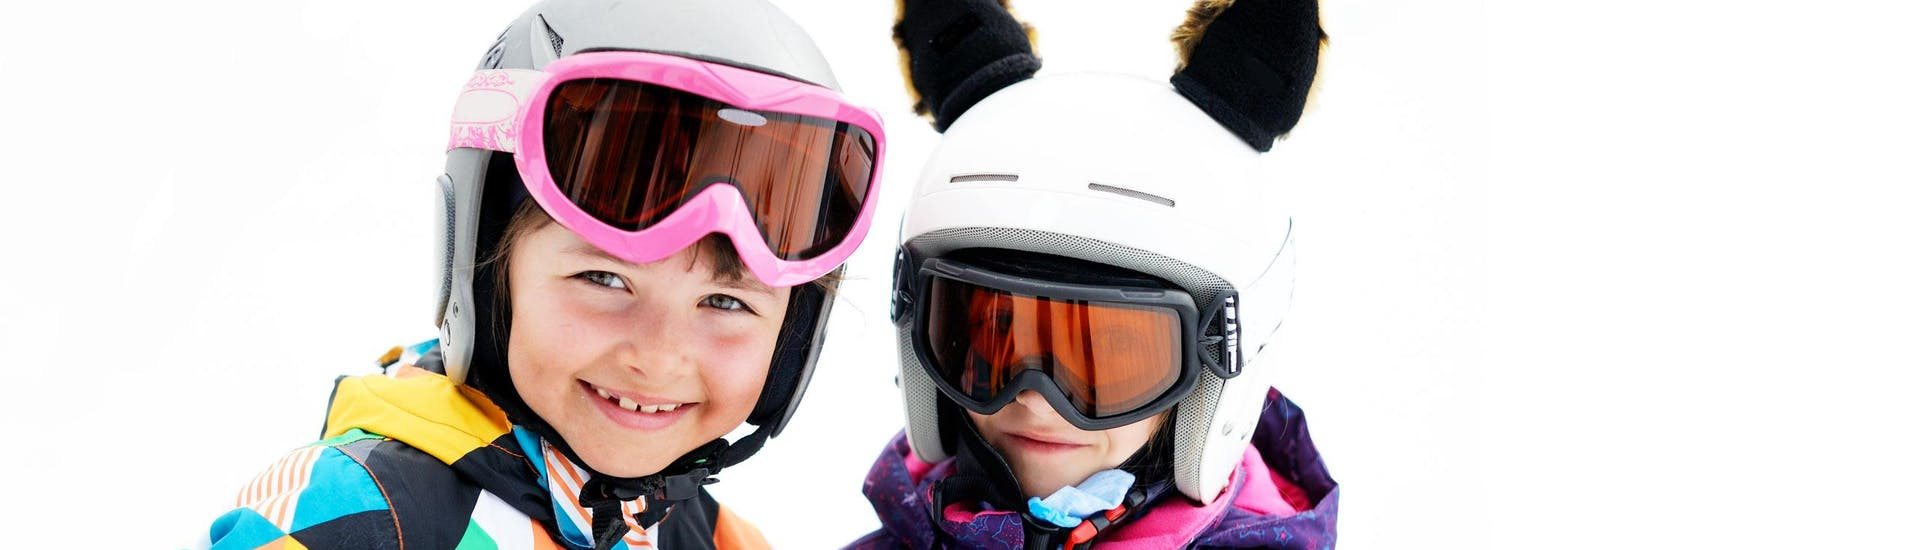 Two young children smiling at the camera during one of the Private Ski Lessons for Kids - Low Season organised by Starski Grand Bornand.